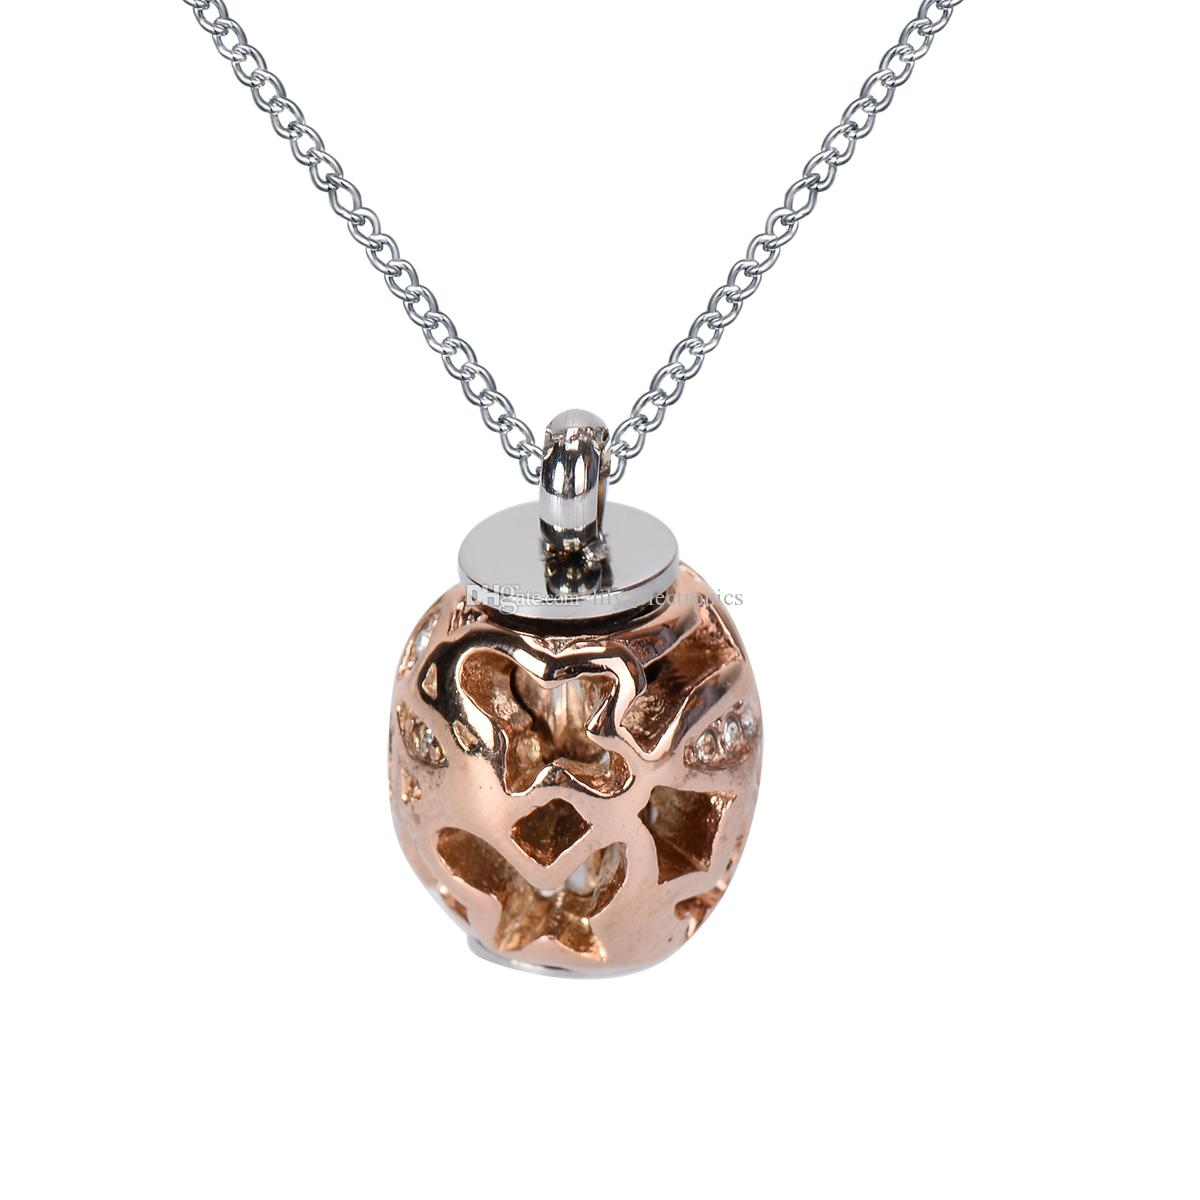 Wholesale lily cremation urn necklace rose gold hollow for Bulk jewelry chain canada